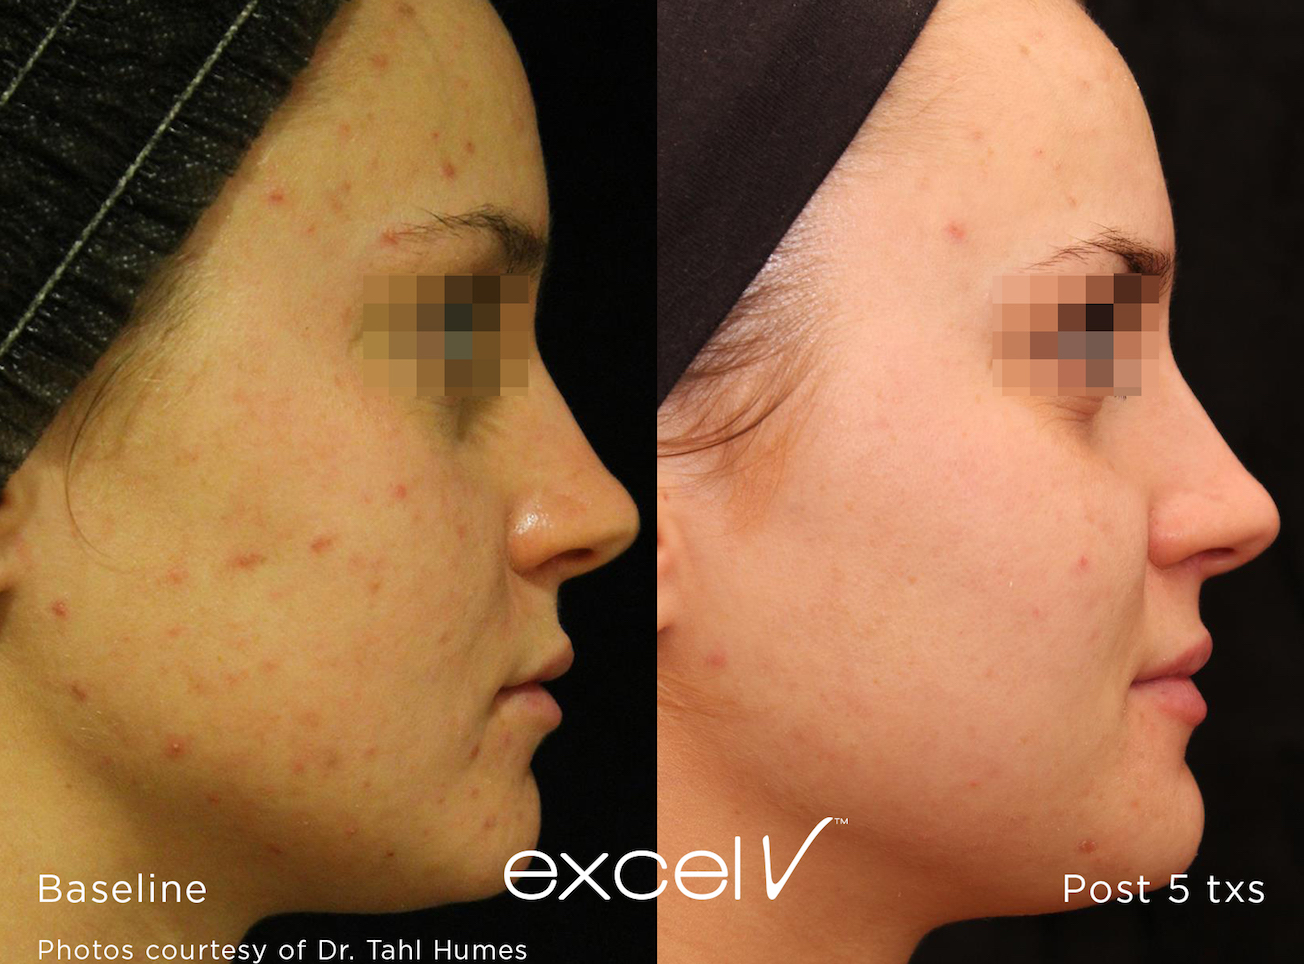 Excel V Laser For Veins And Pigmentation Royal Tunbridge